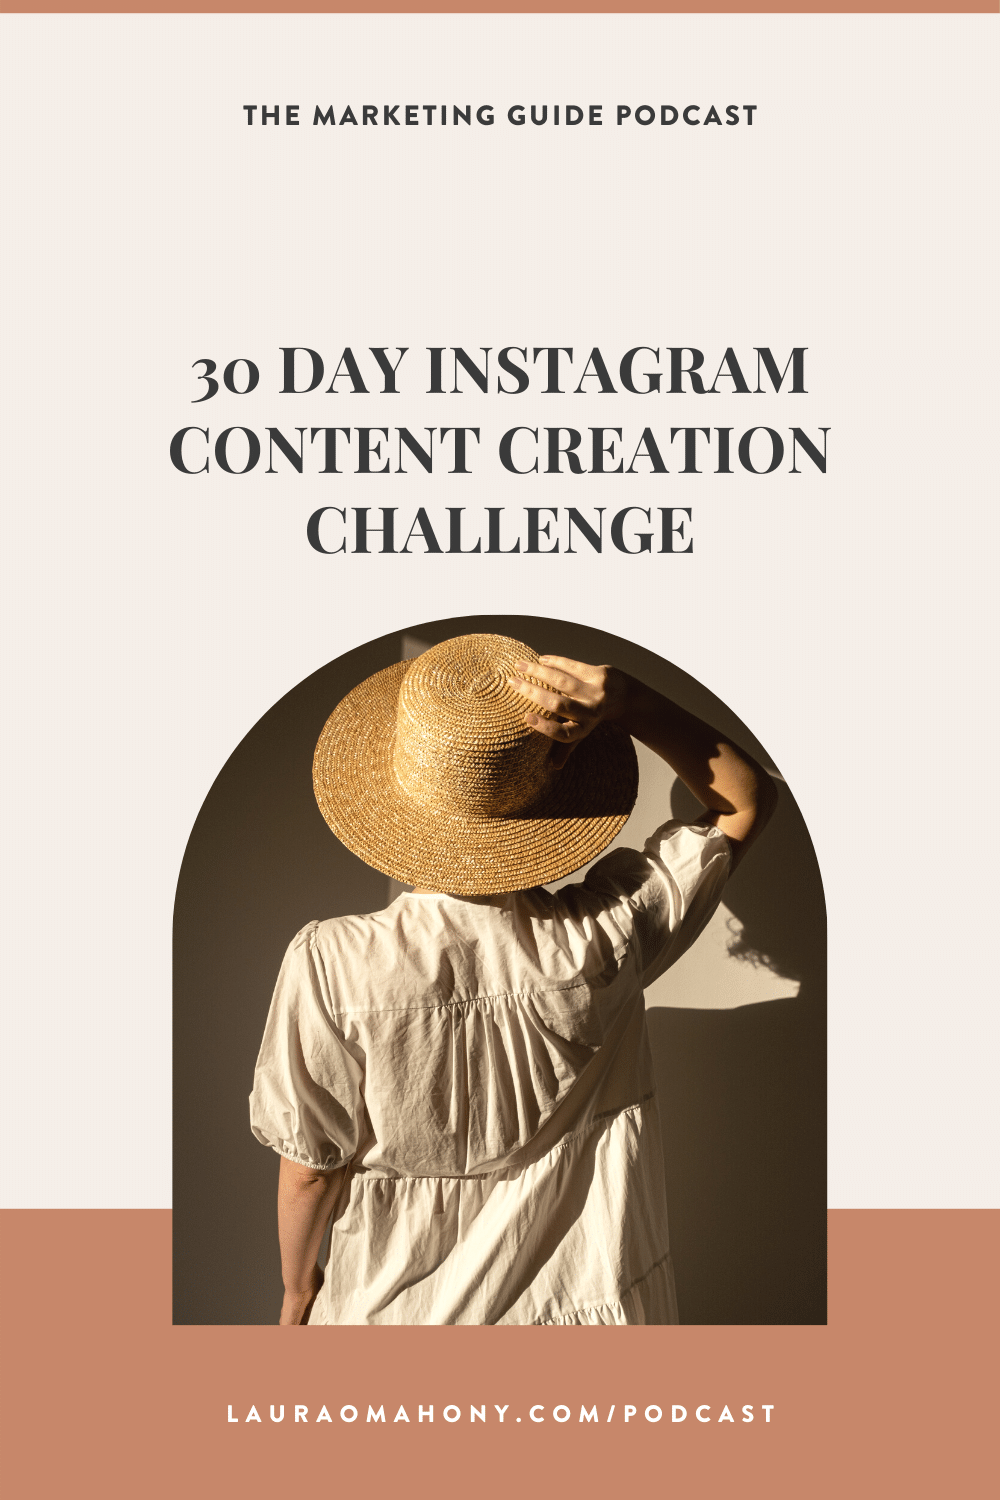 30 Day Instagram Content Creation Challenge the marketing guide podcast laura o'mahony